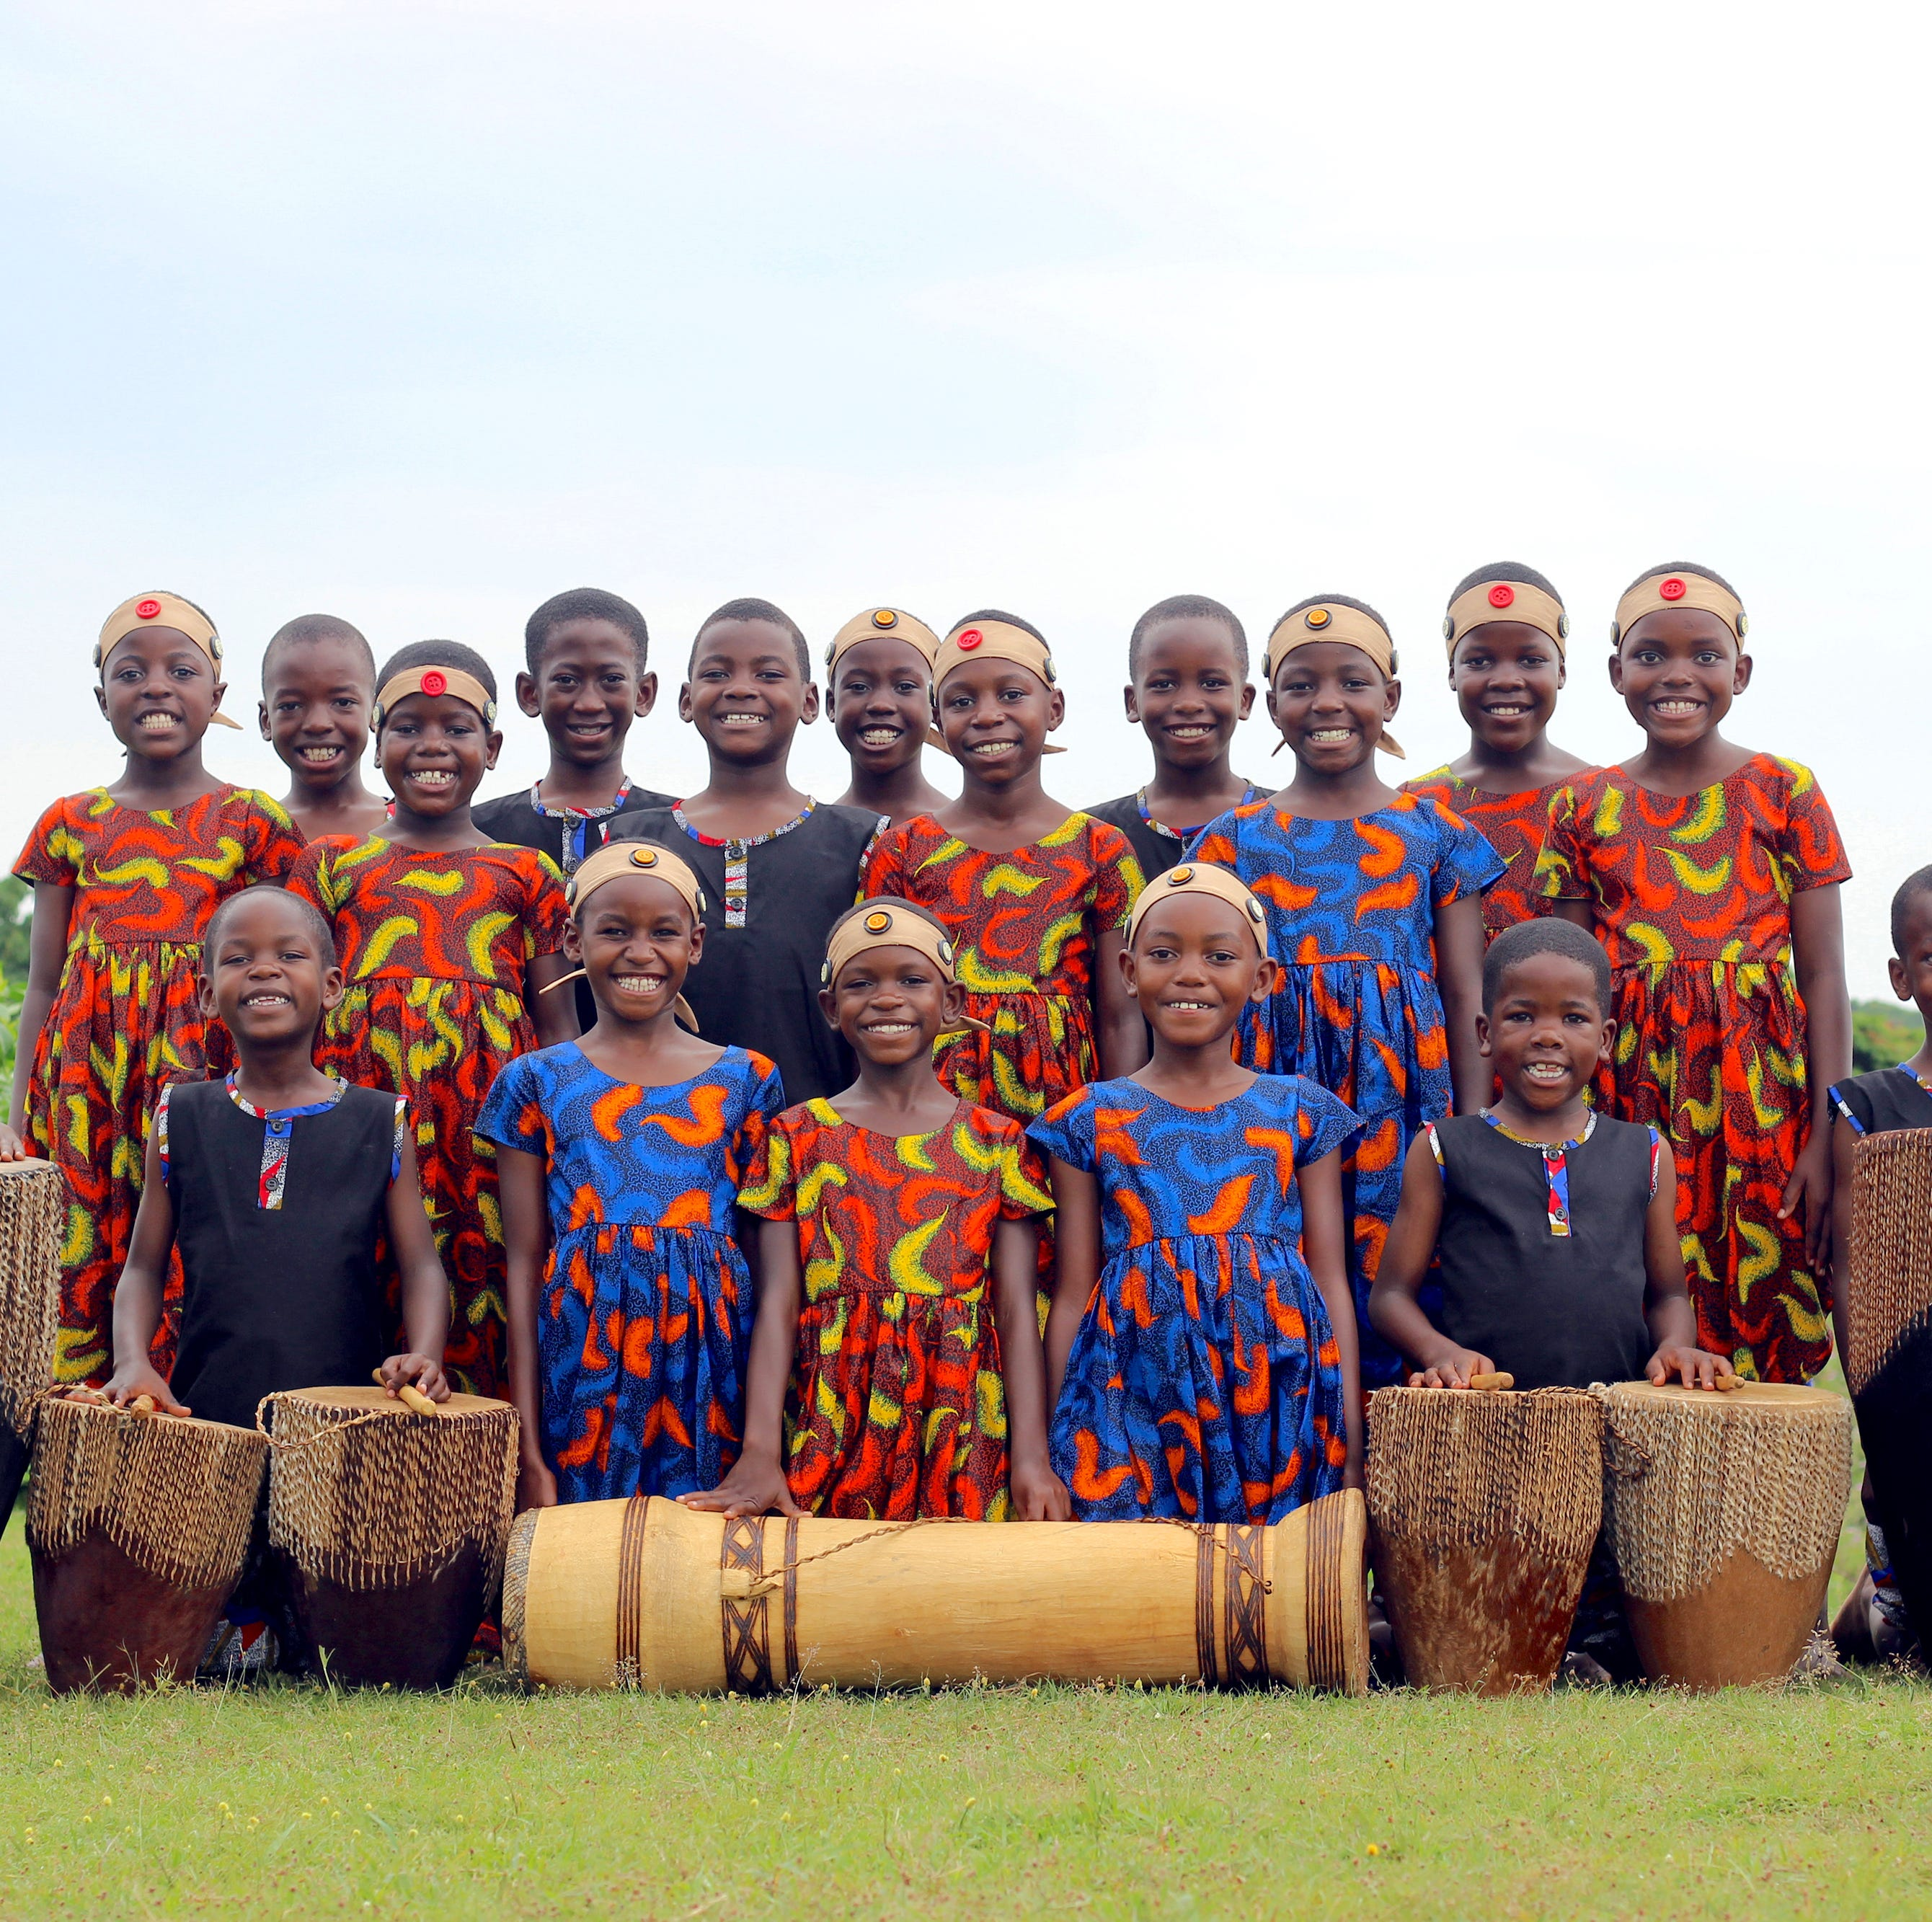 African Children's Choir coming to Visalia for charity concert